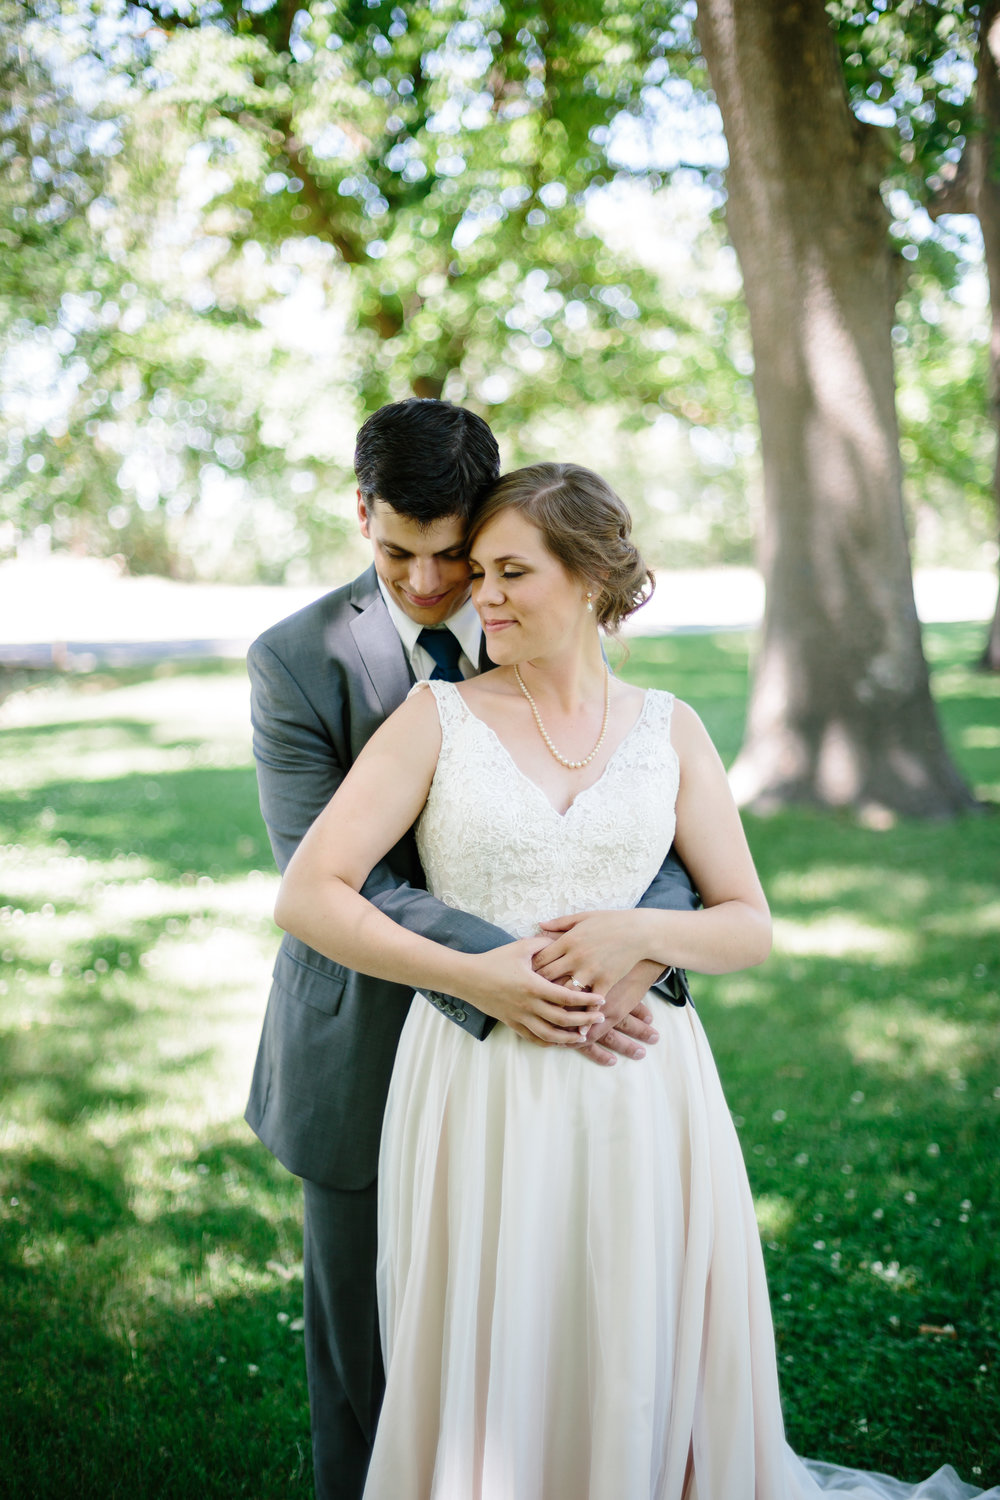 Jordan & Shantel Married - Idaho - Corrie Mick Photography-100.jpg